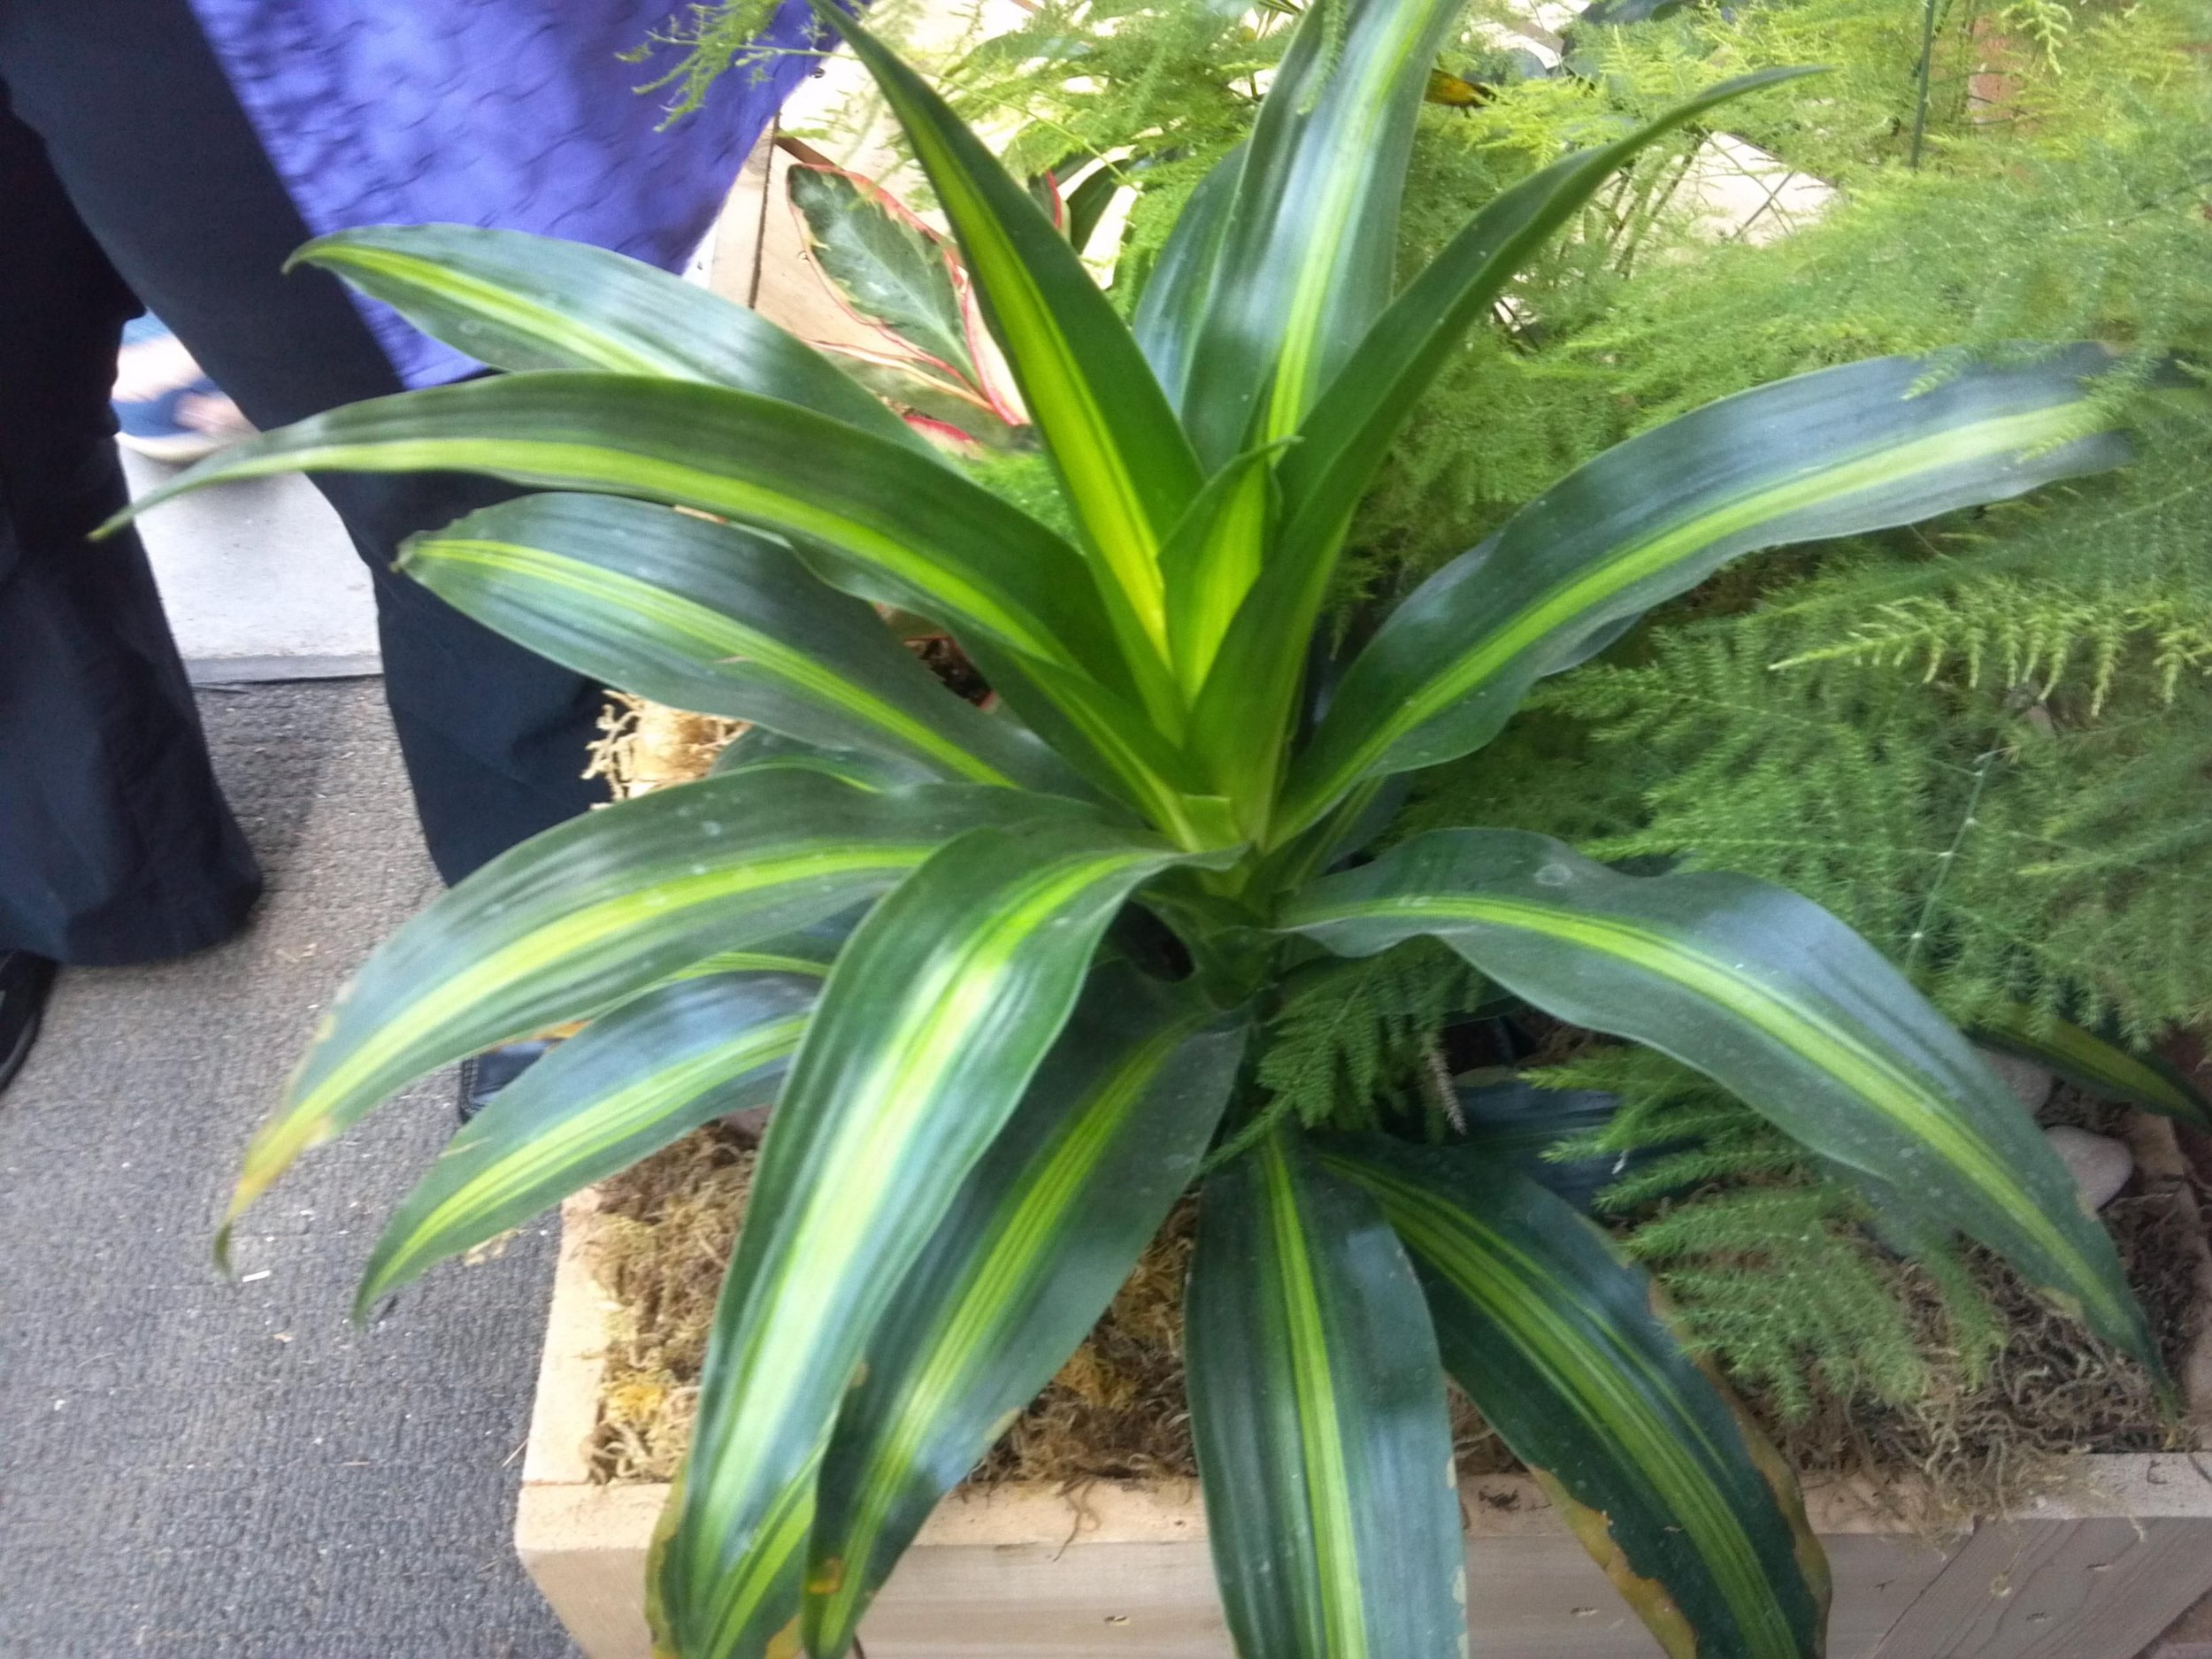 rIKKI - Rikki has highlighted yellow bands down the middle of its leaves. Rikki does not need to be watered until the top two to three inches of soil are dry. They are also fine in any light.